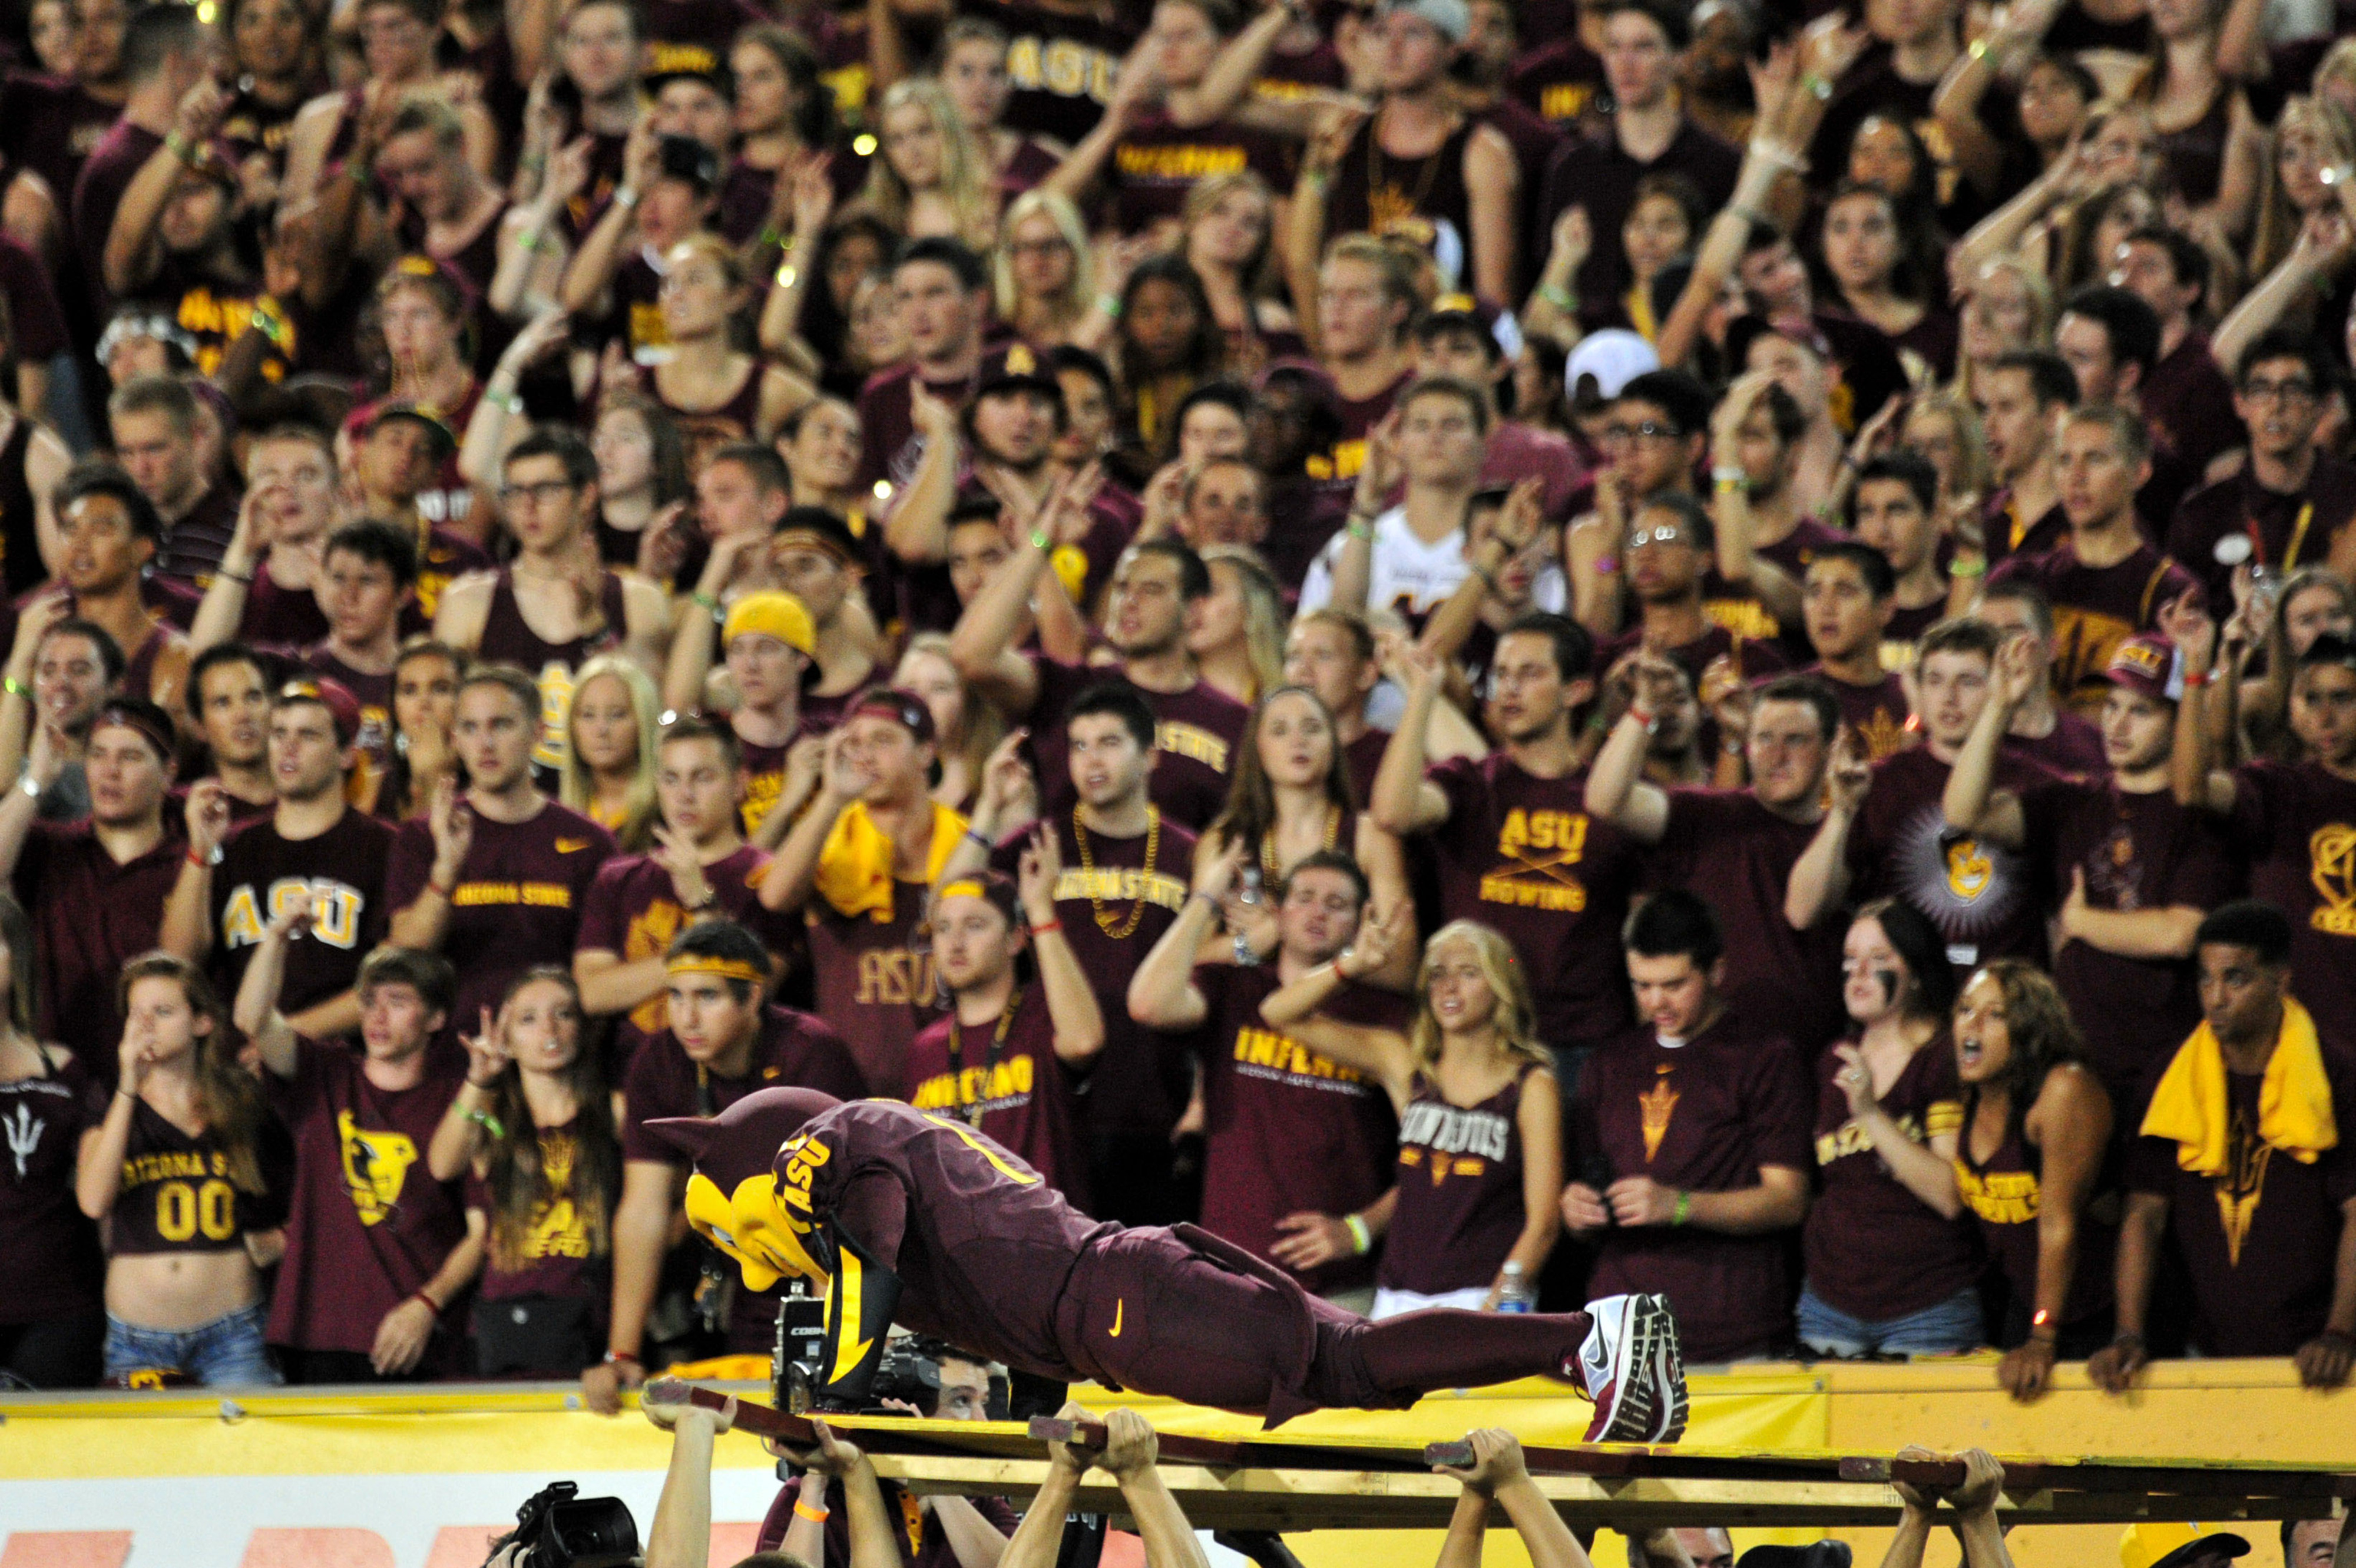 Sparky got a workout in on Saturday night.